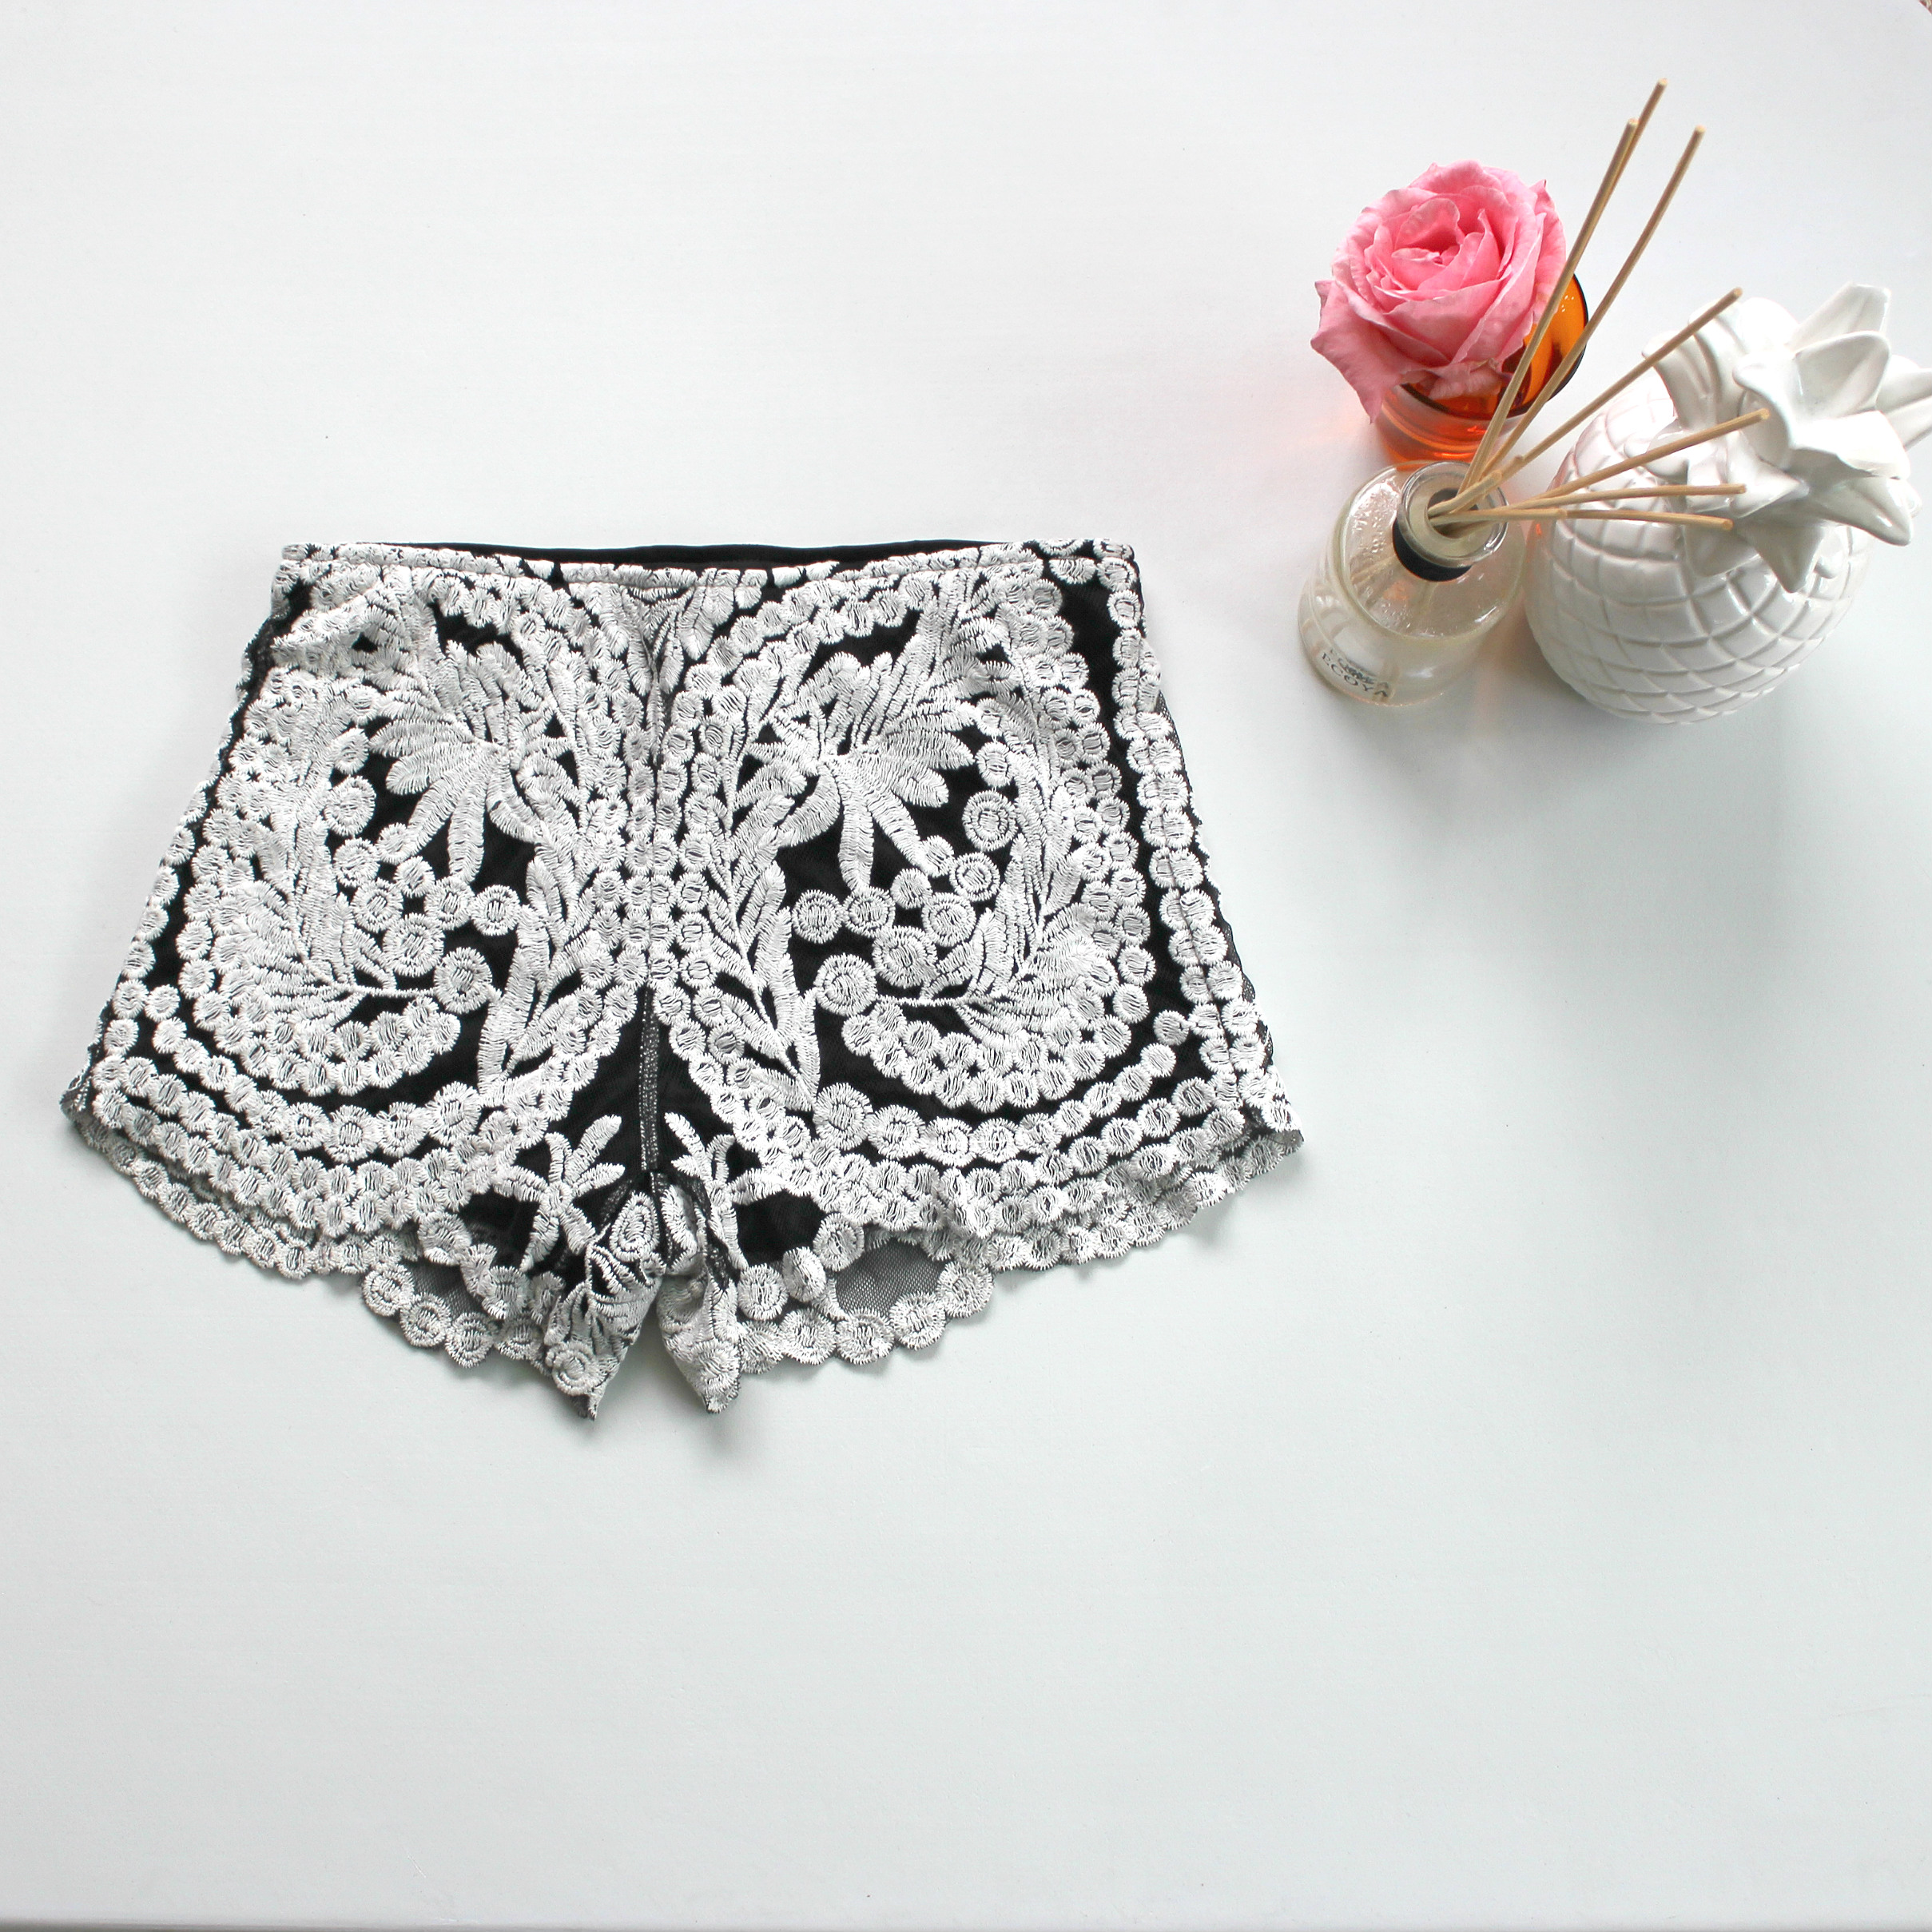 New Black and White Fashion Shorts Lace Trendy Fashion Summer Holidays